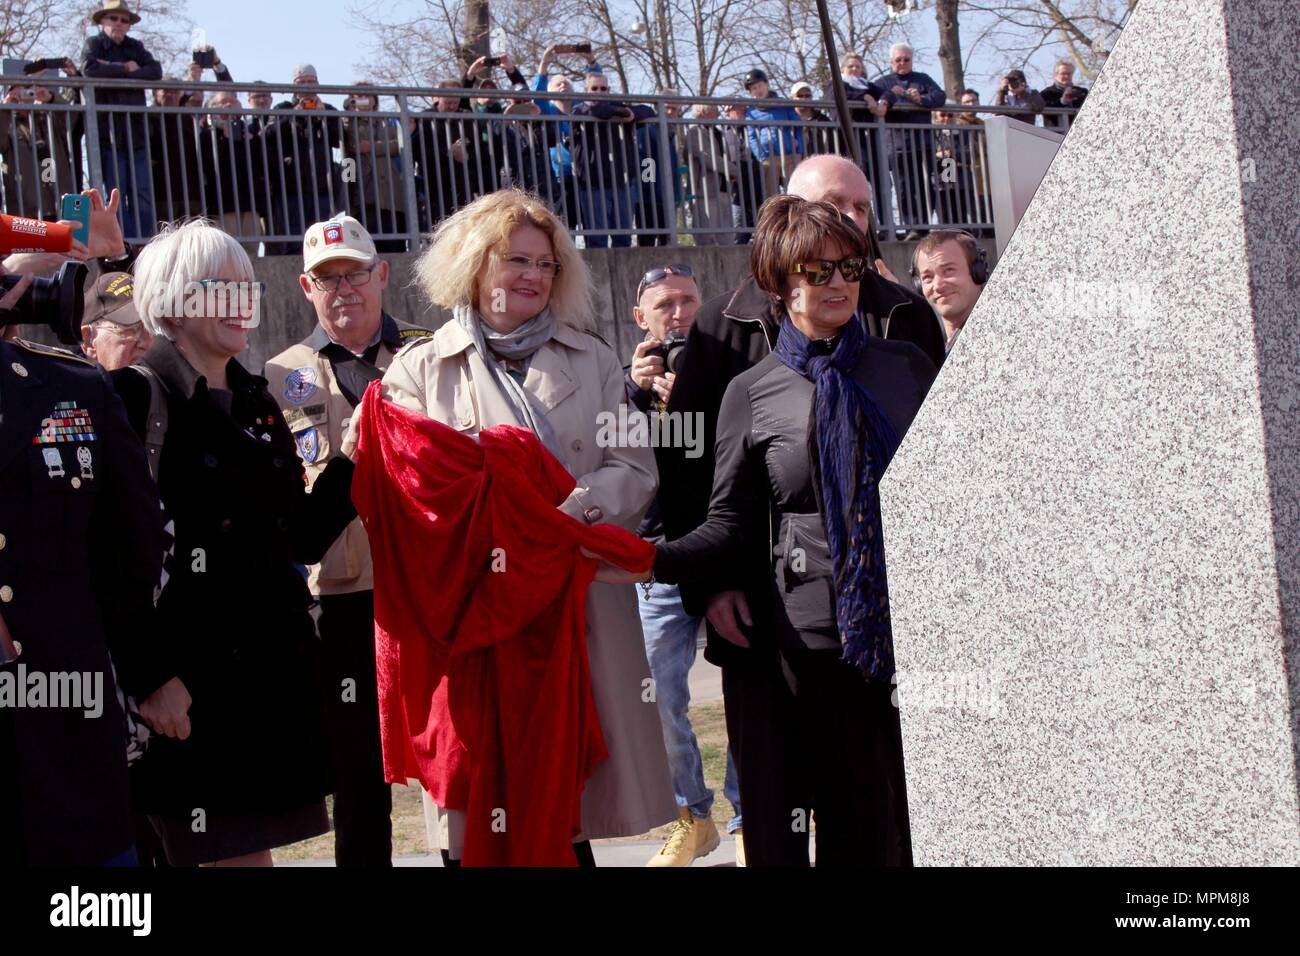 Helen Patton, left, the granddaughter of U.S. Army Gen. George Patton; Catherine Rommel, center, the granddaughter of German Field Marshall Erwin Rommel; Luci Schey, president of the Ralph and Luci Schey Foundation, examine a memorial to the Soldiers of the 249th Engineer Combat Battalion Saturday, March 24, 2017 in Nierstein Germany. (Photo by Lt. Col. Jefferson Wolfe) - Stock Image